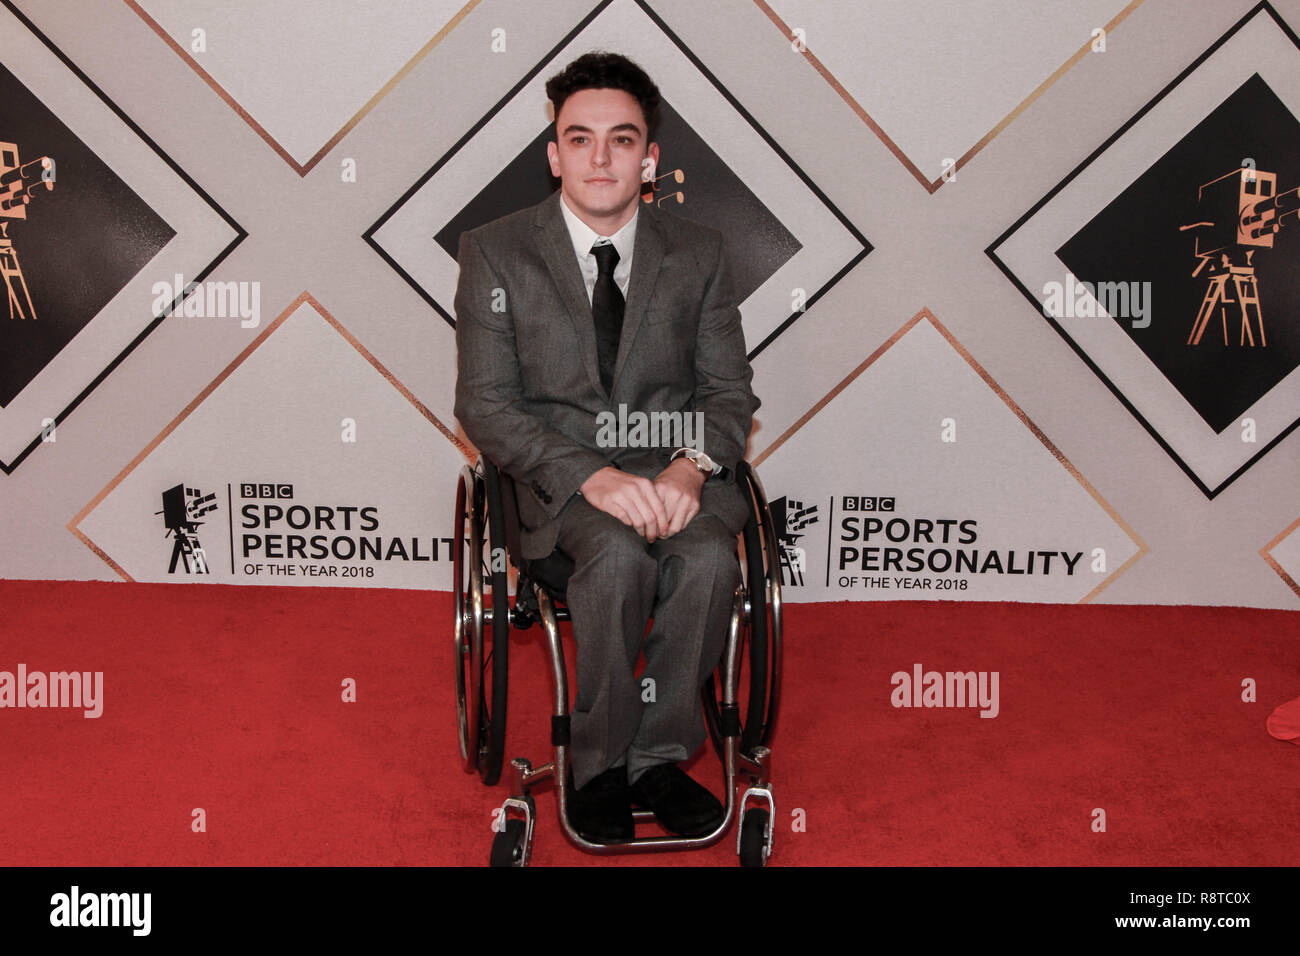 Harri Jenkins on the red carpet ahead of the BBC Sports Personality of the Year Awards 2018 at Genting Arena, Birmingham, United Kingdom - Stock Image